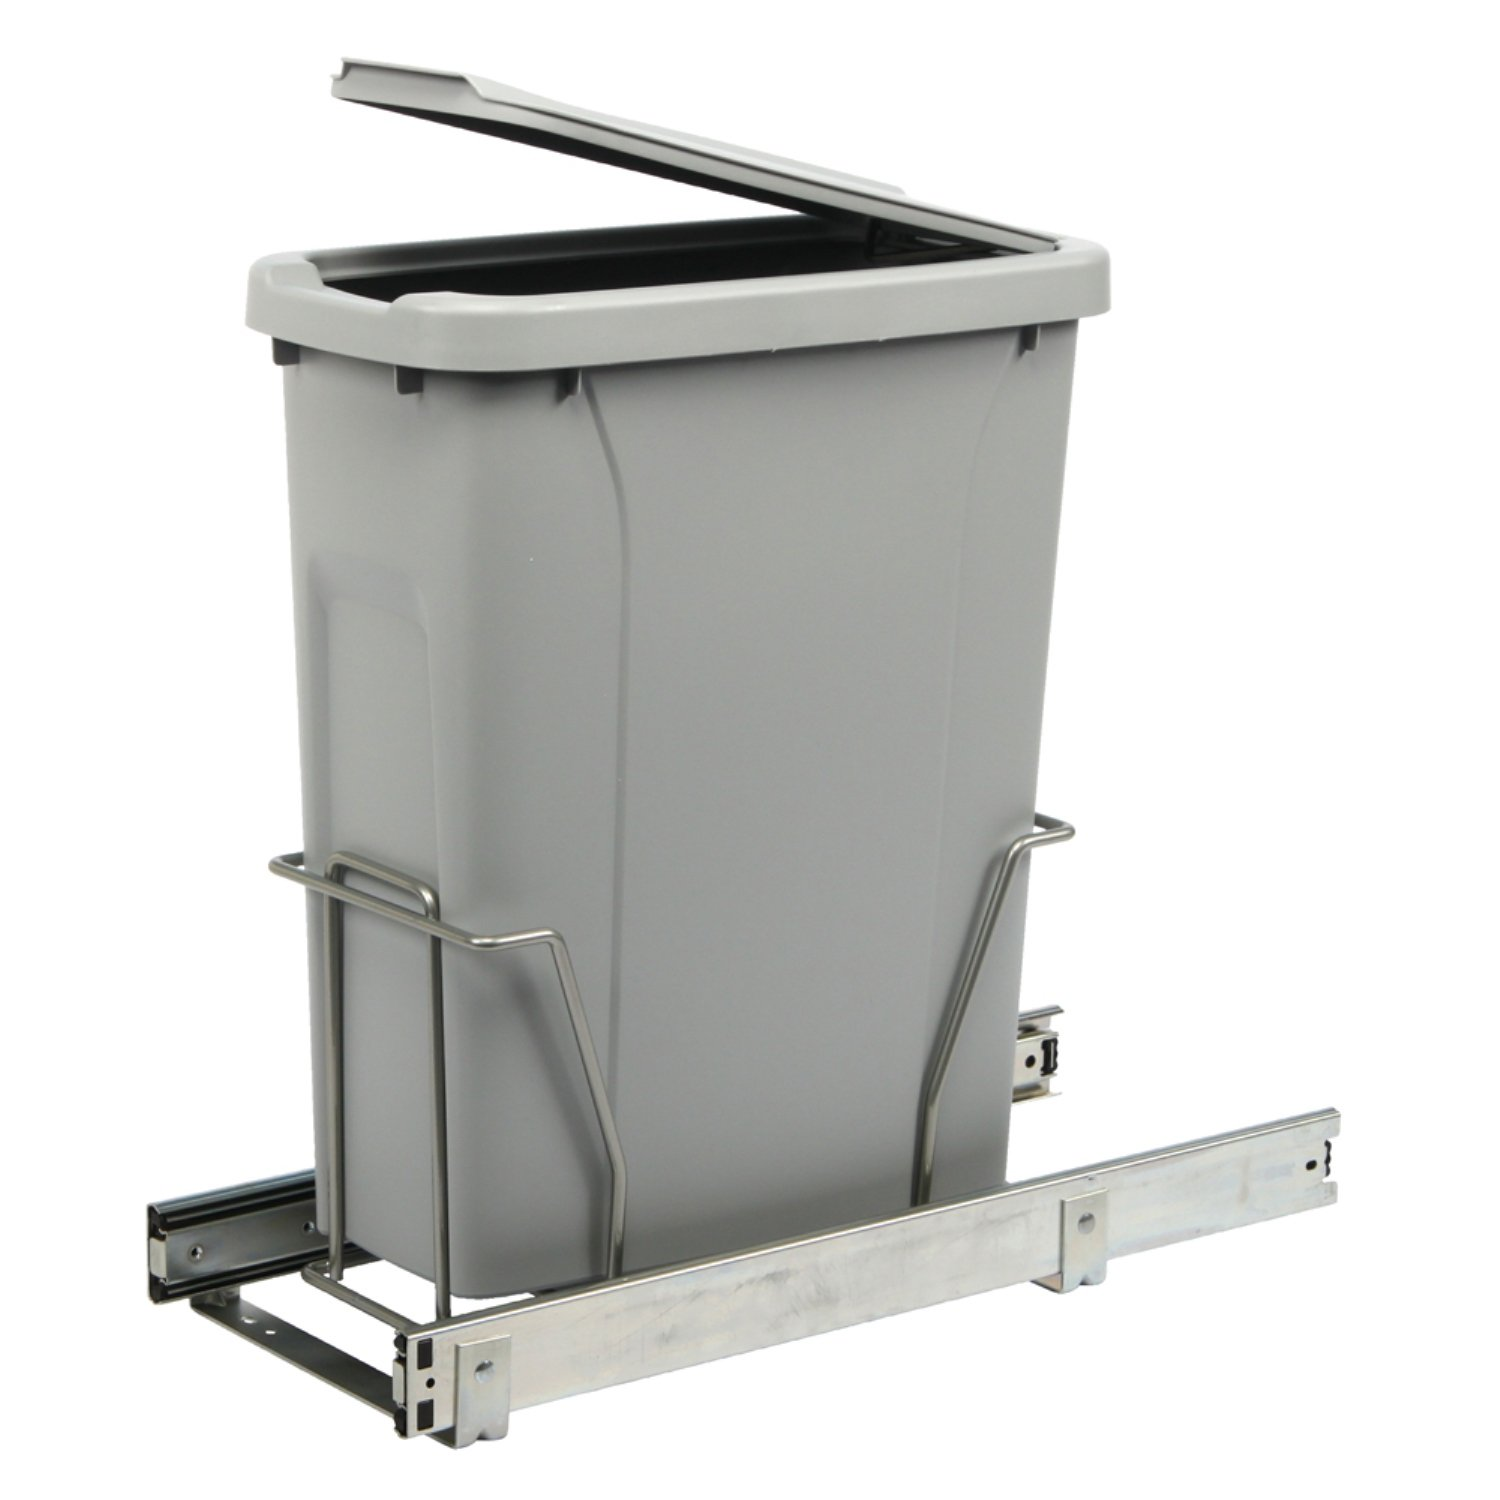 Knape & Vogt PLSW9-1-20-R-P In-Cabinet Pull Out Trash Can, 16.625 by 9.75 by 20.38-Inch